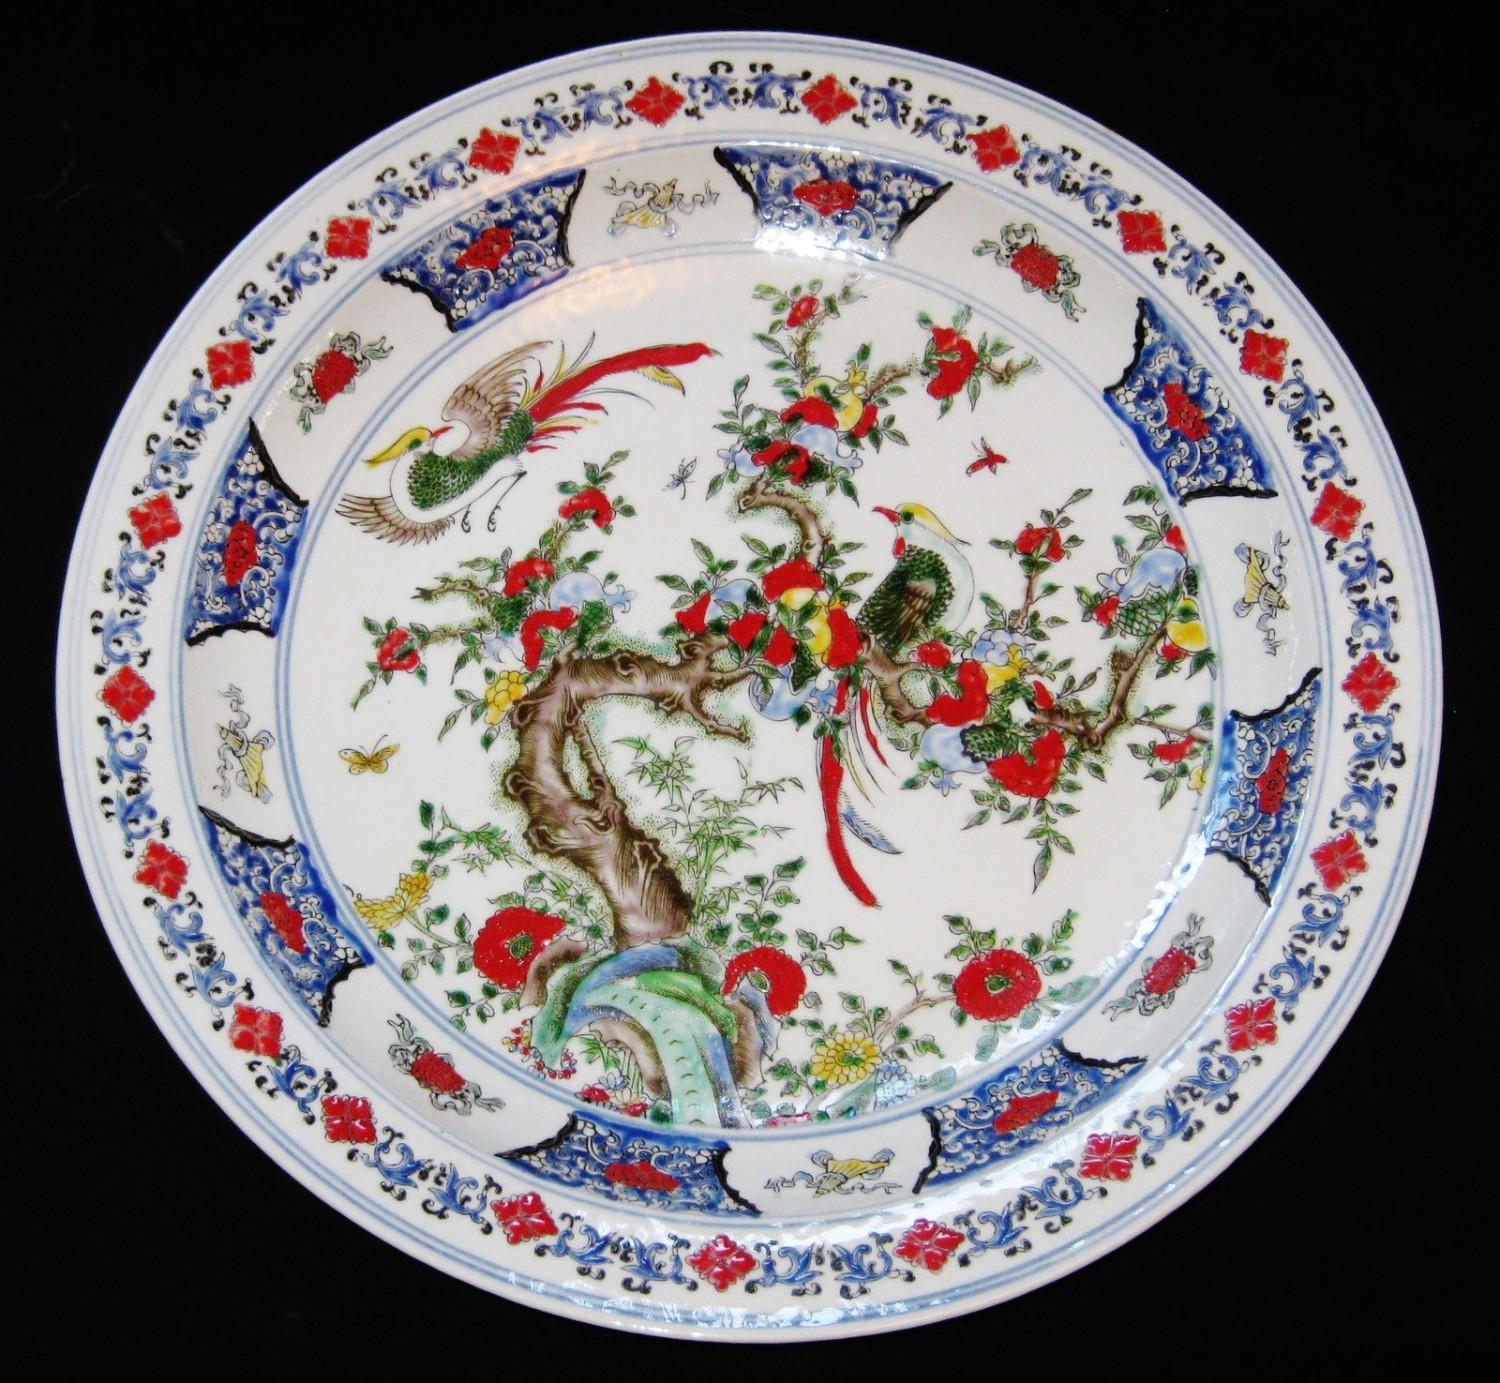 ANTIQUE BIG CHINESE PORCELAIN CHARGER 45 cm, BIRDS & FLOWER, KANG XI MARK.